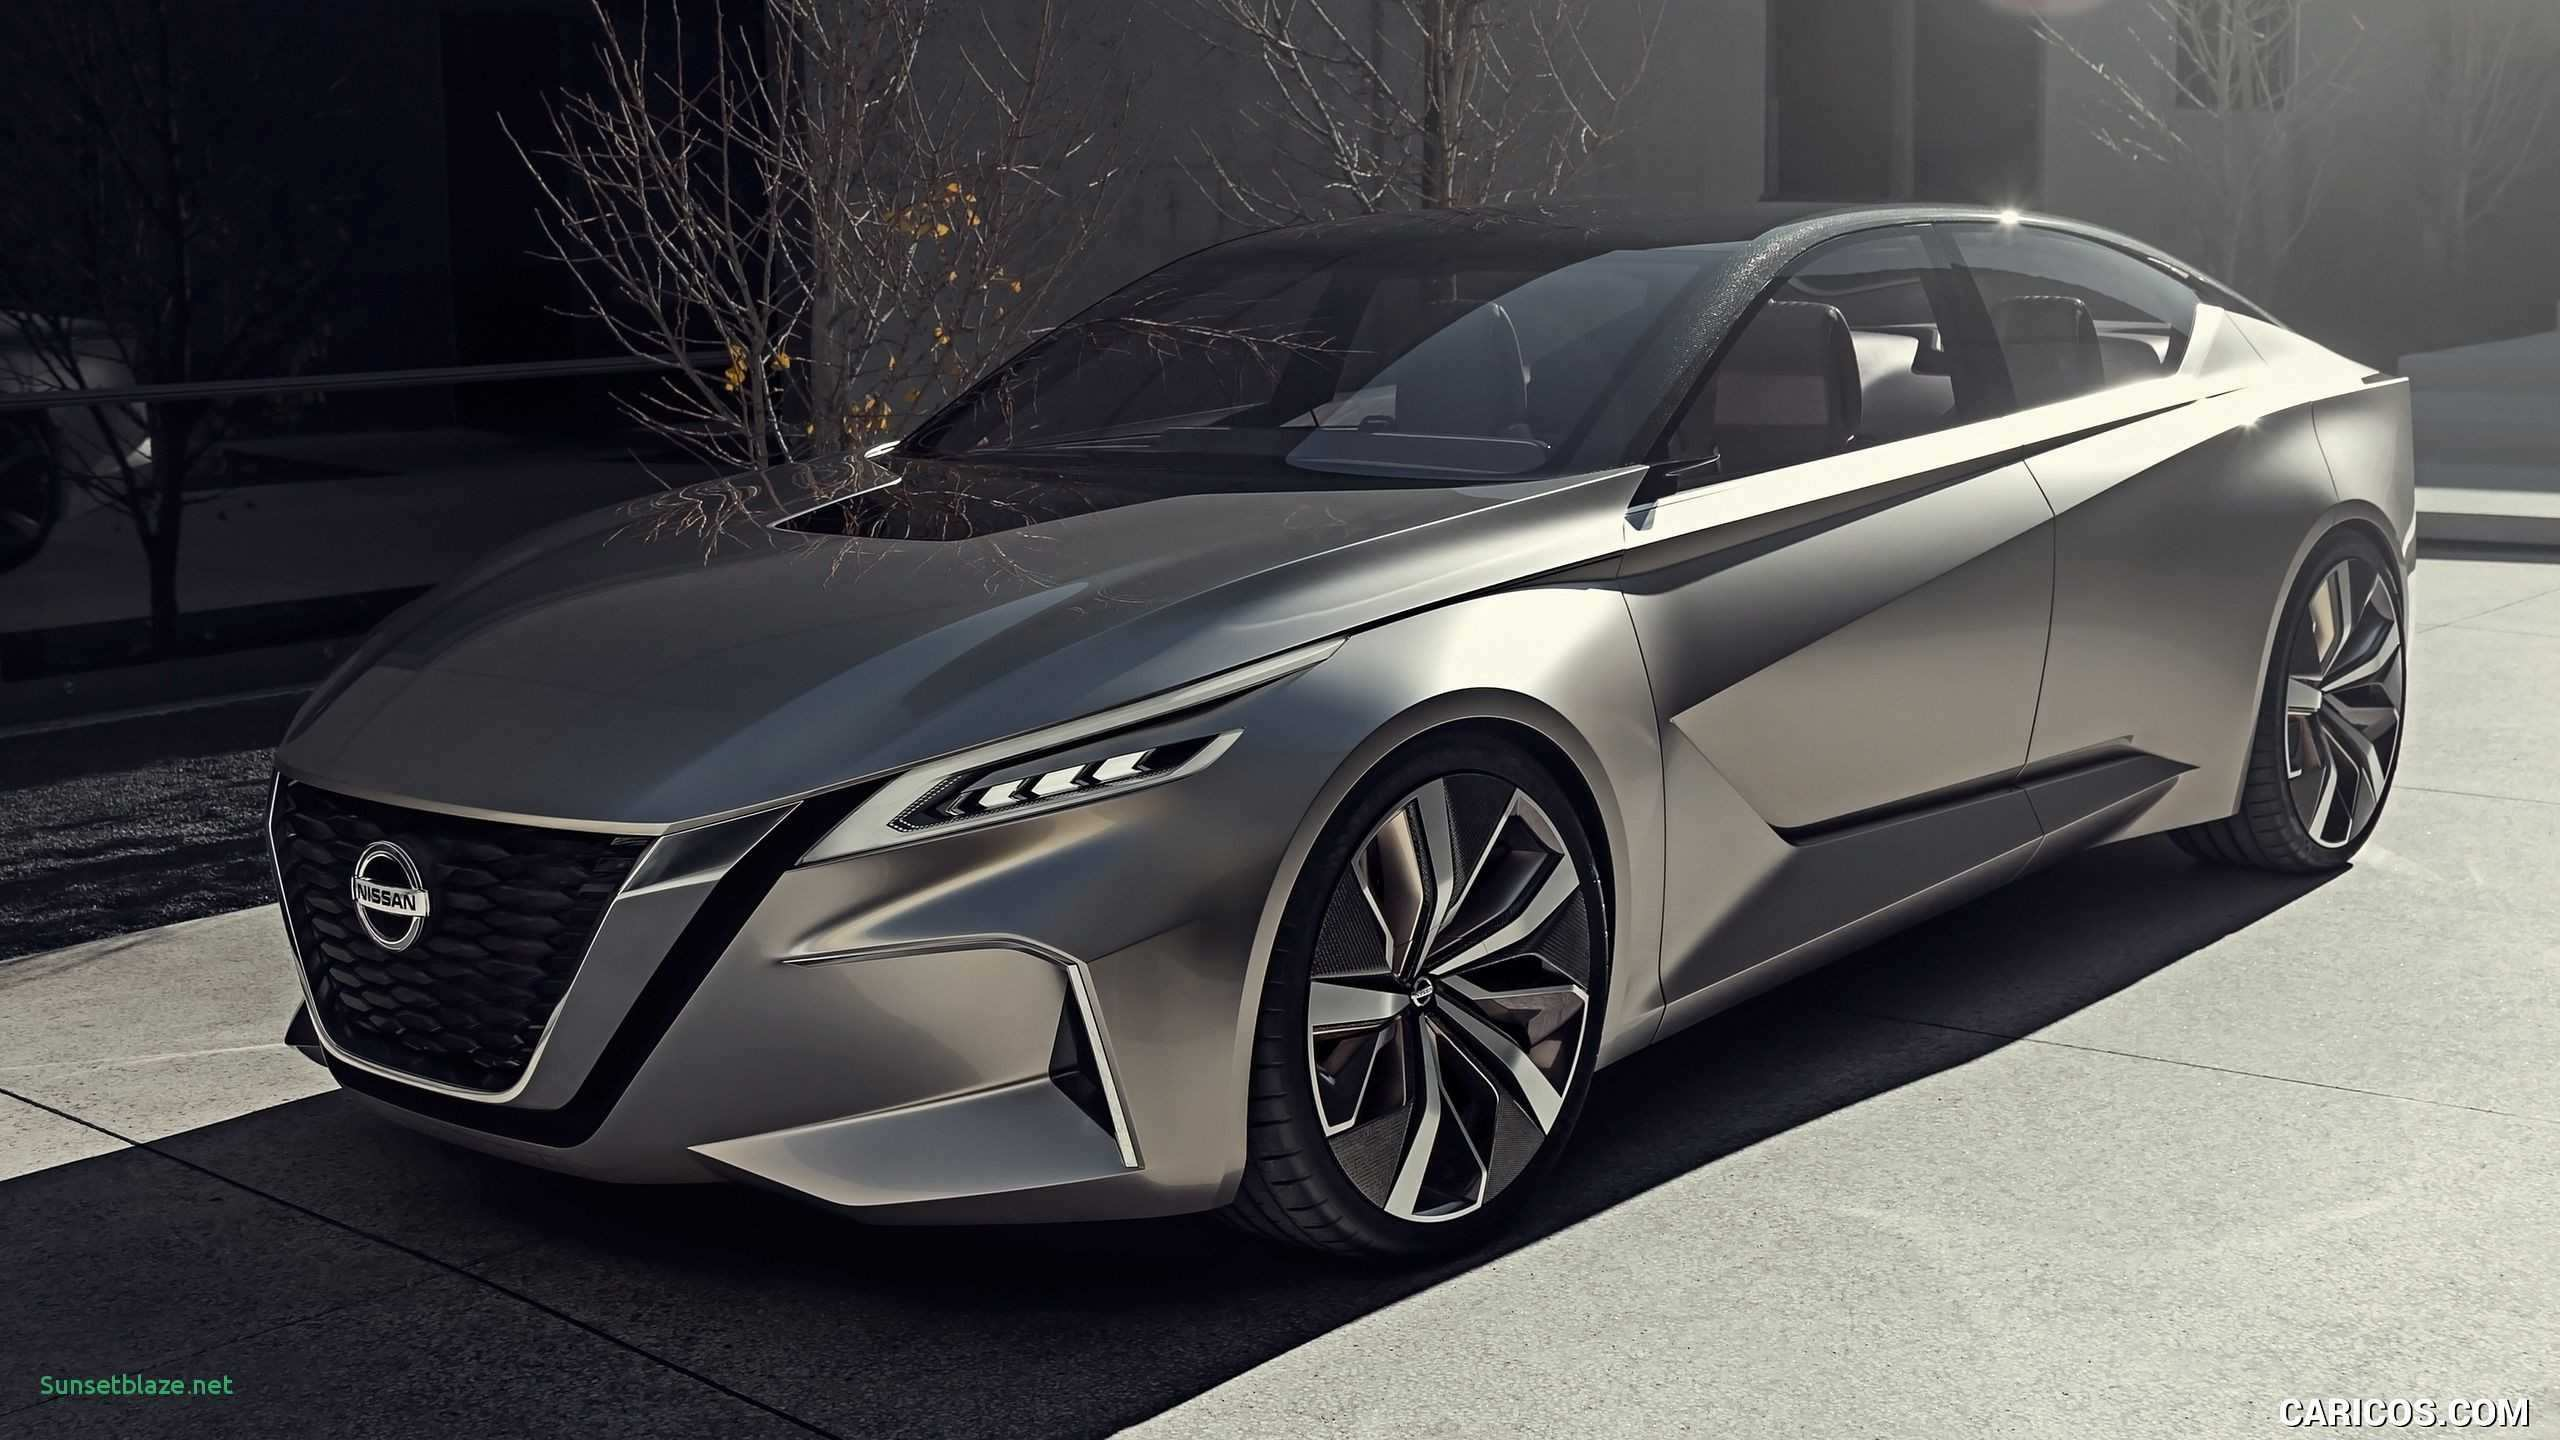 62 The 2020 Nissan Silvia Price And Review